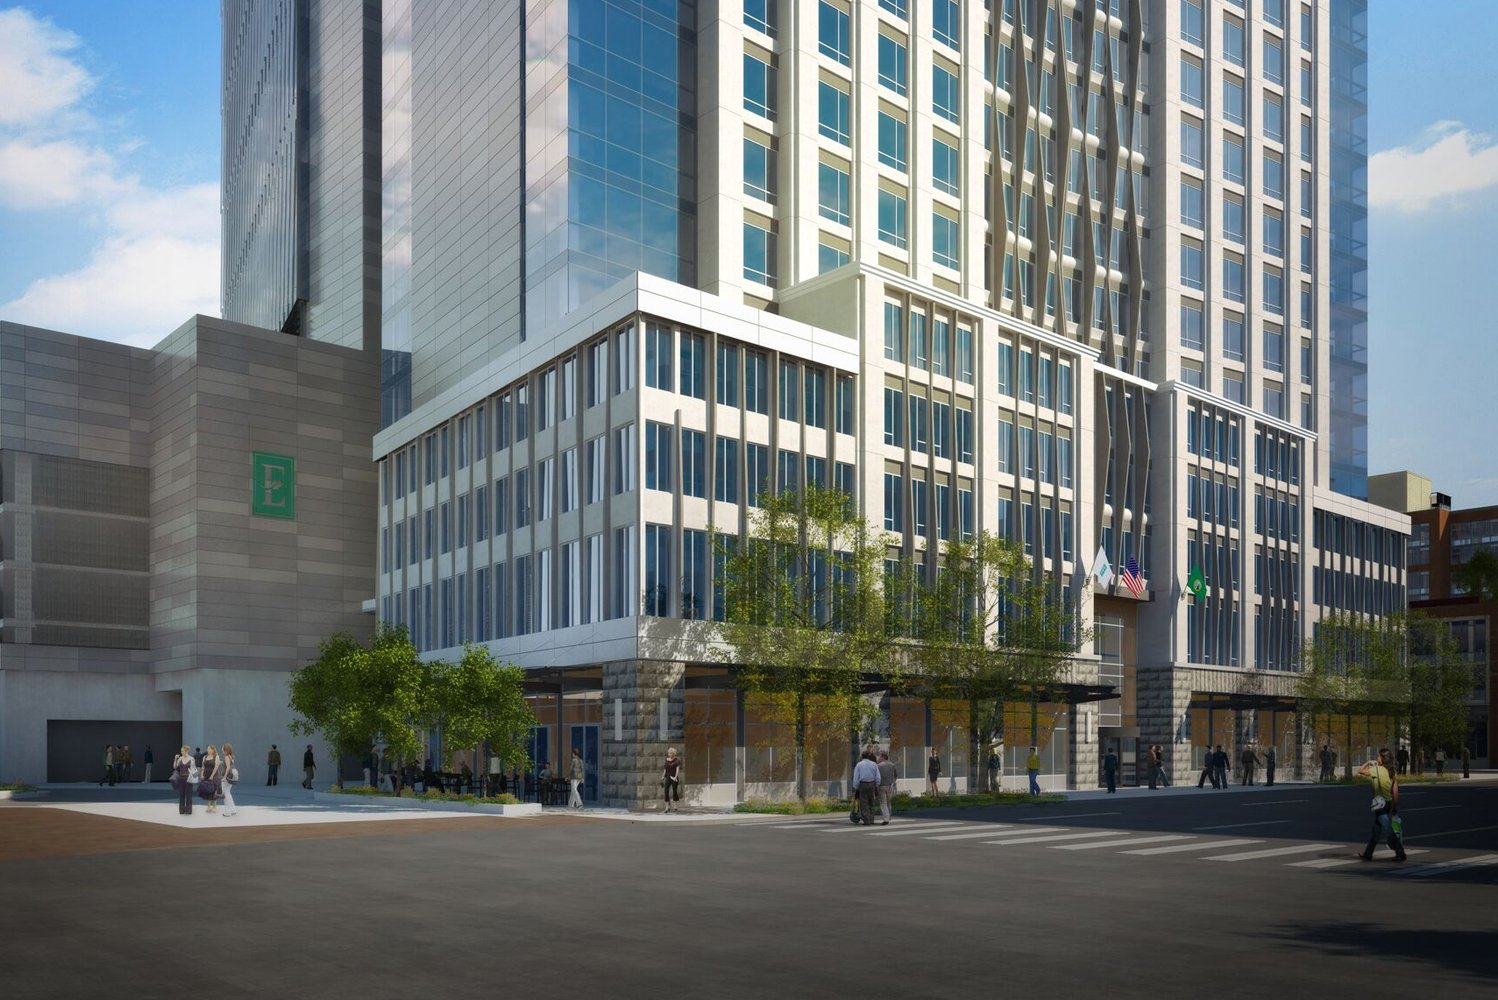 Embassy Suites by Hilton opened a new hotel in Pioneer Square, Seattle's first neighborhood. Photo credit: Embassy Suites by Hilton Seattle Downtown Pioneer Square